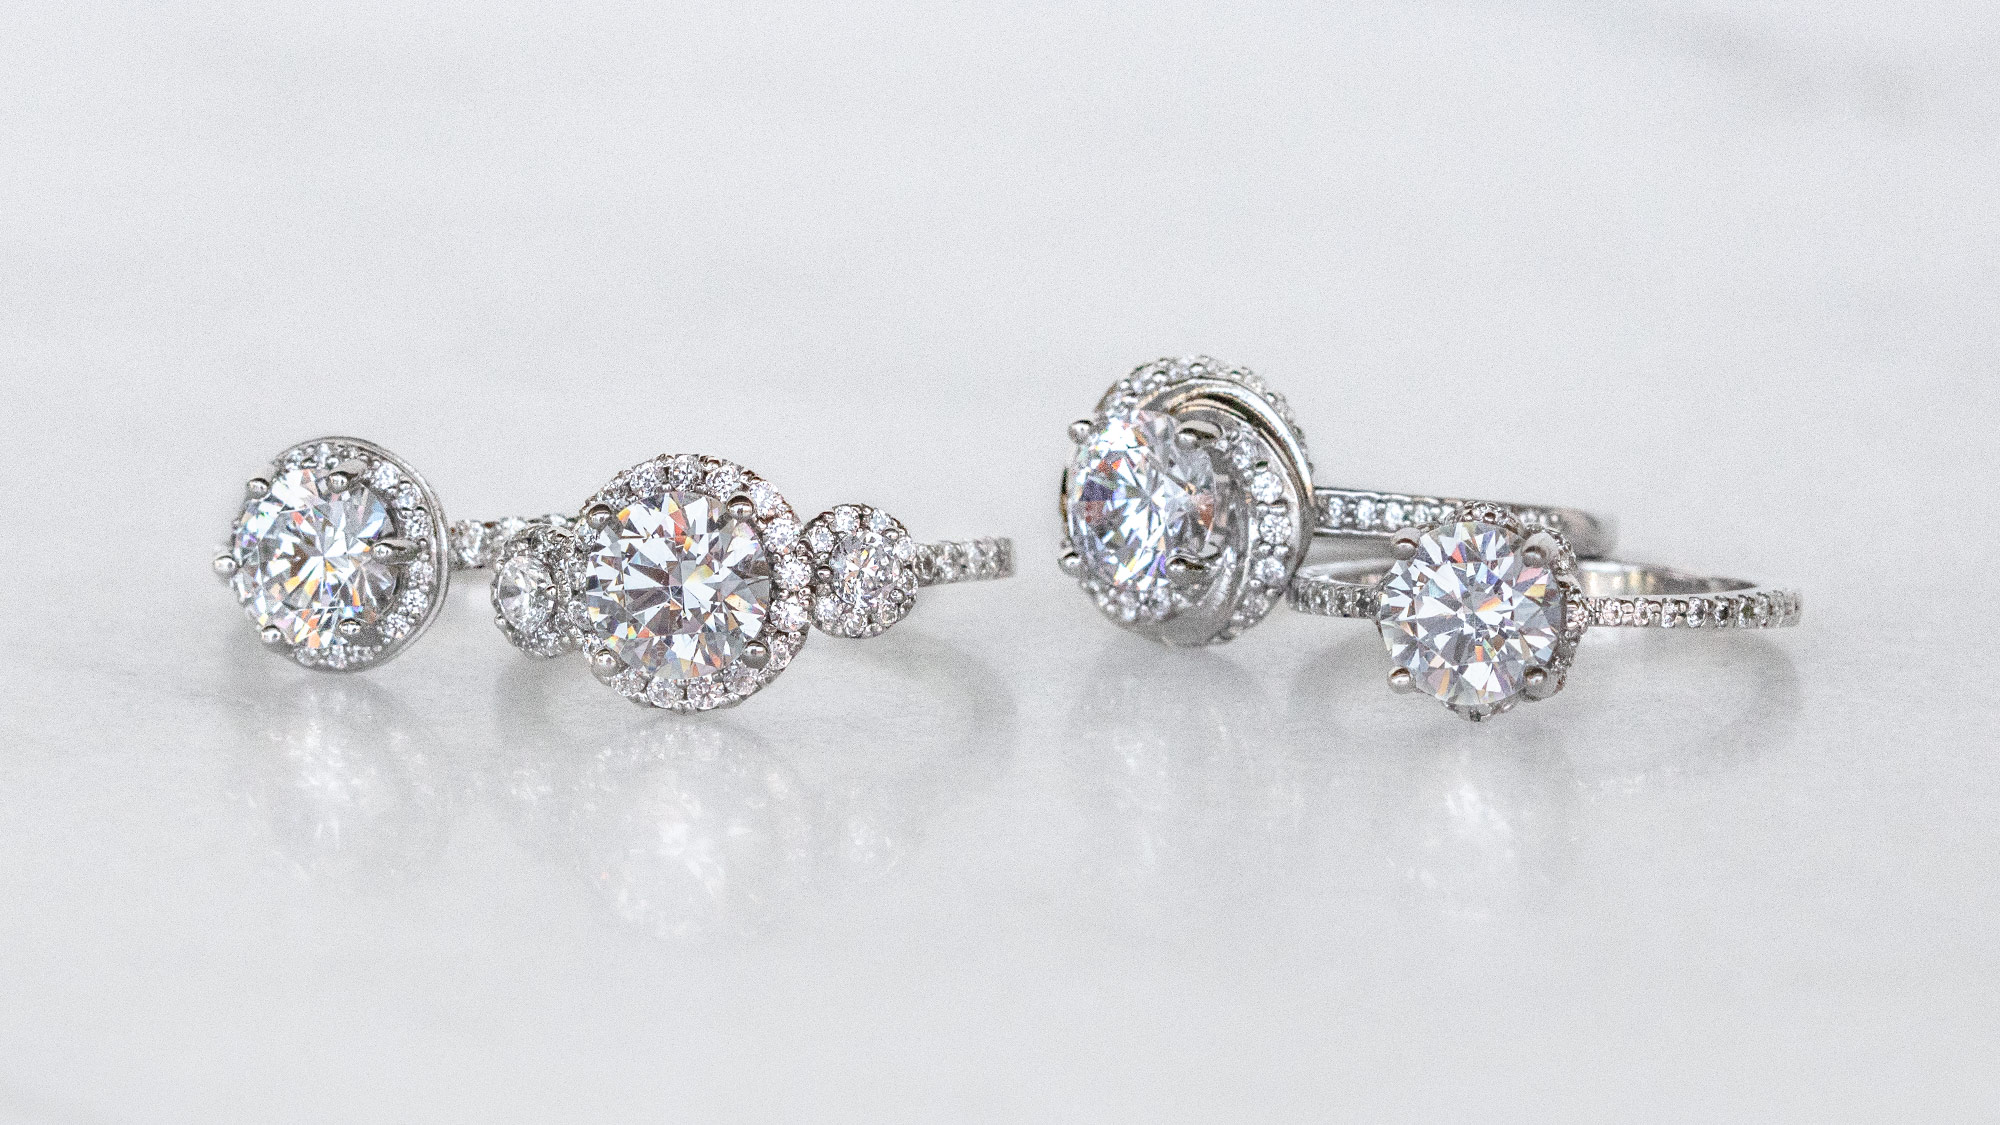 Multiple halo engagement rings from Diamond Nexus.